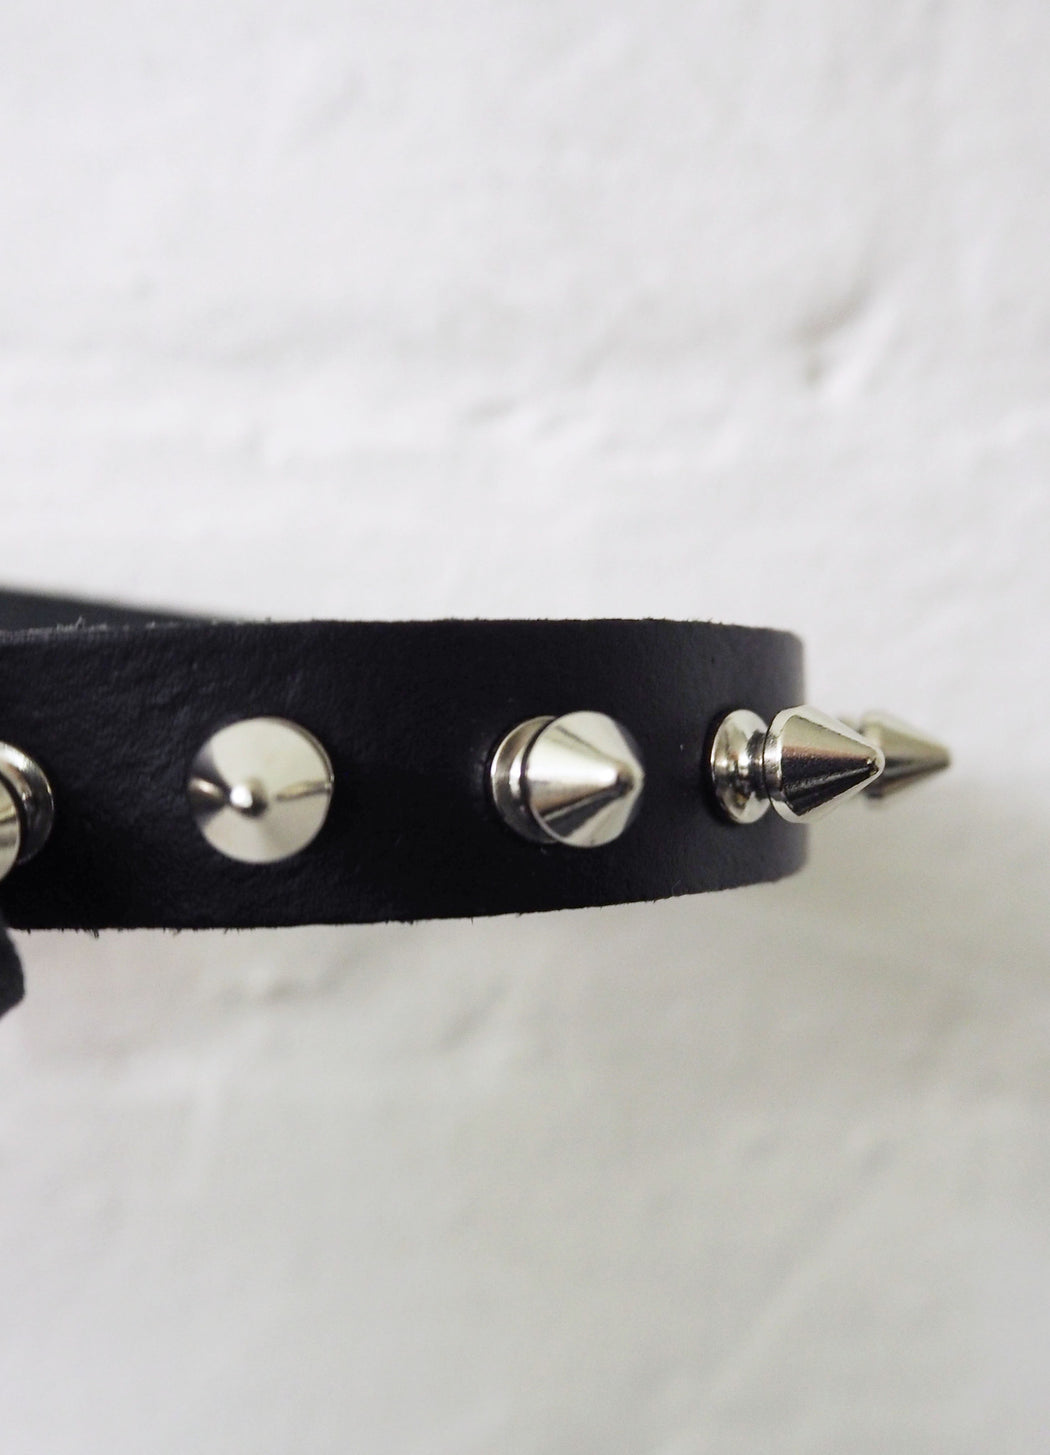 spiked black leather choker made in london mary wyatt